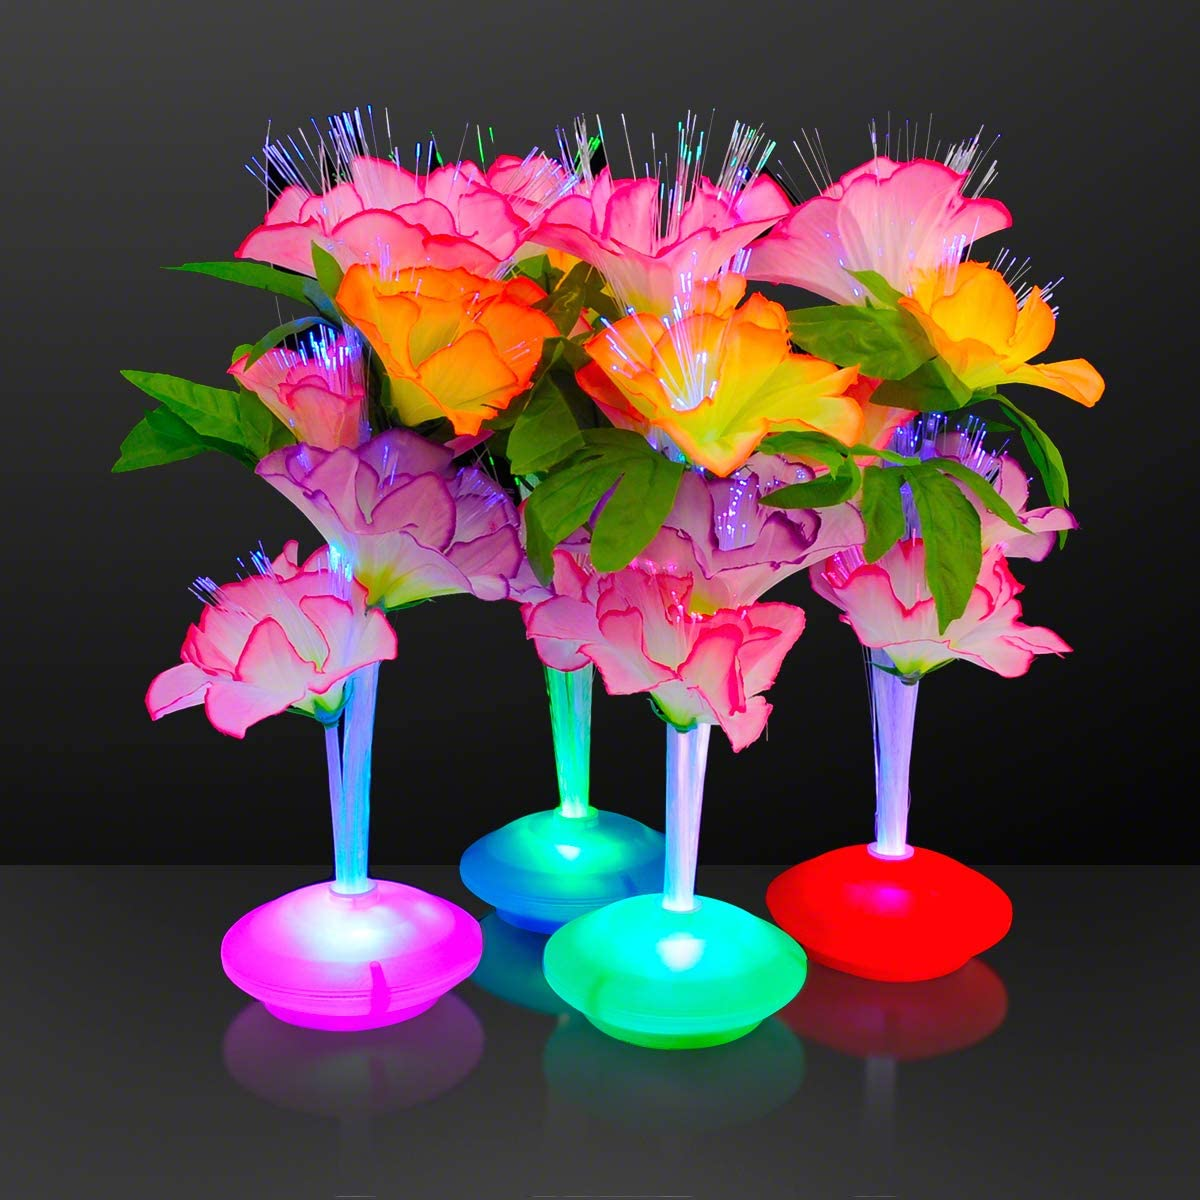 Fiber Optic LED Flower Centerpieces (Set of 12)